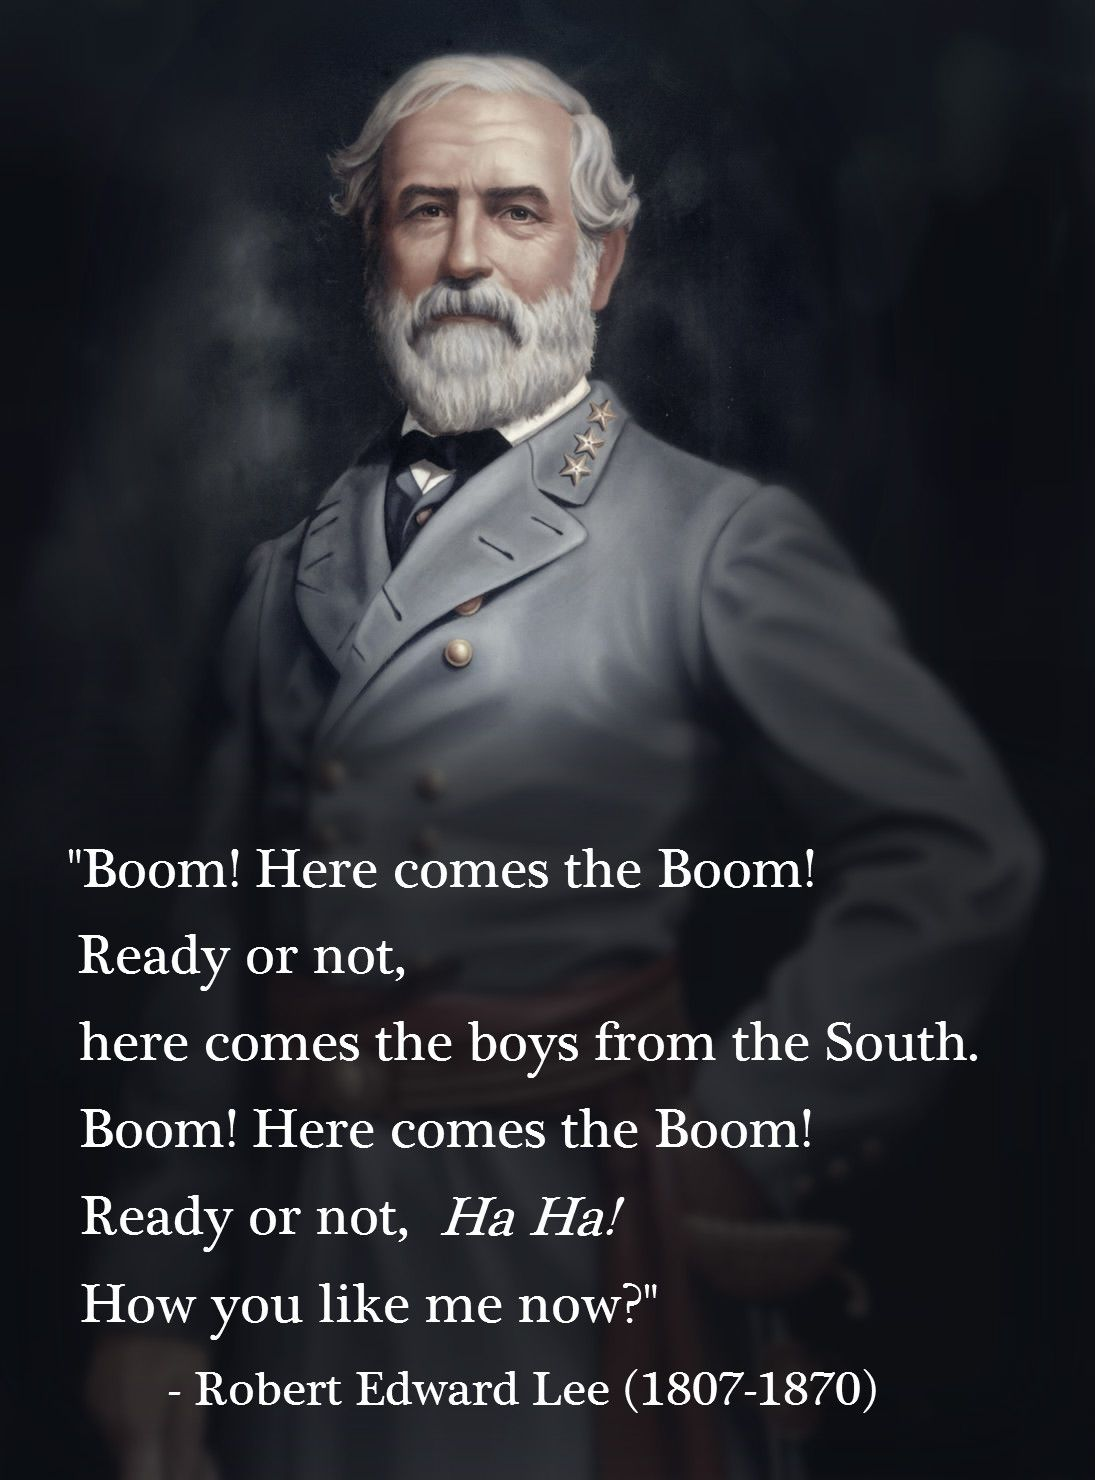 Robert E Lee Quotes On Slavery Quotesgram Robert E Lee Quotes Robert E Lee Civil War Quotes